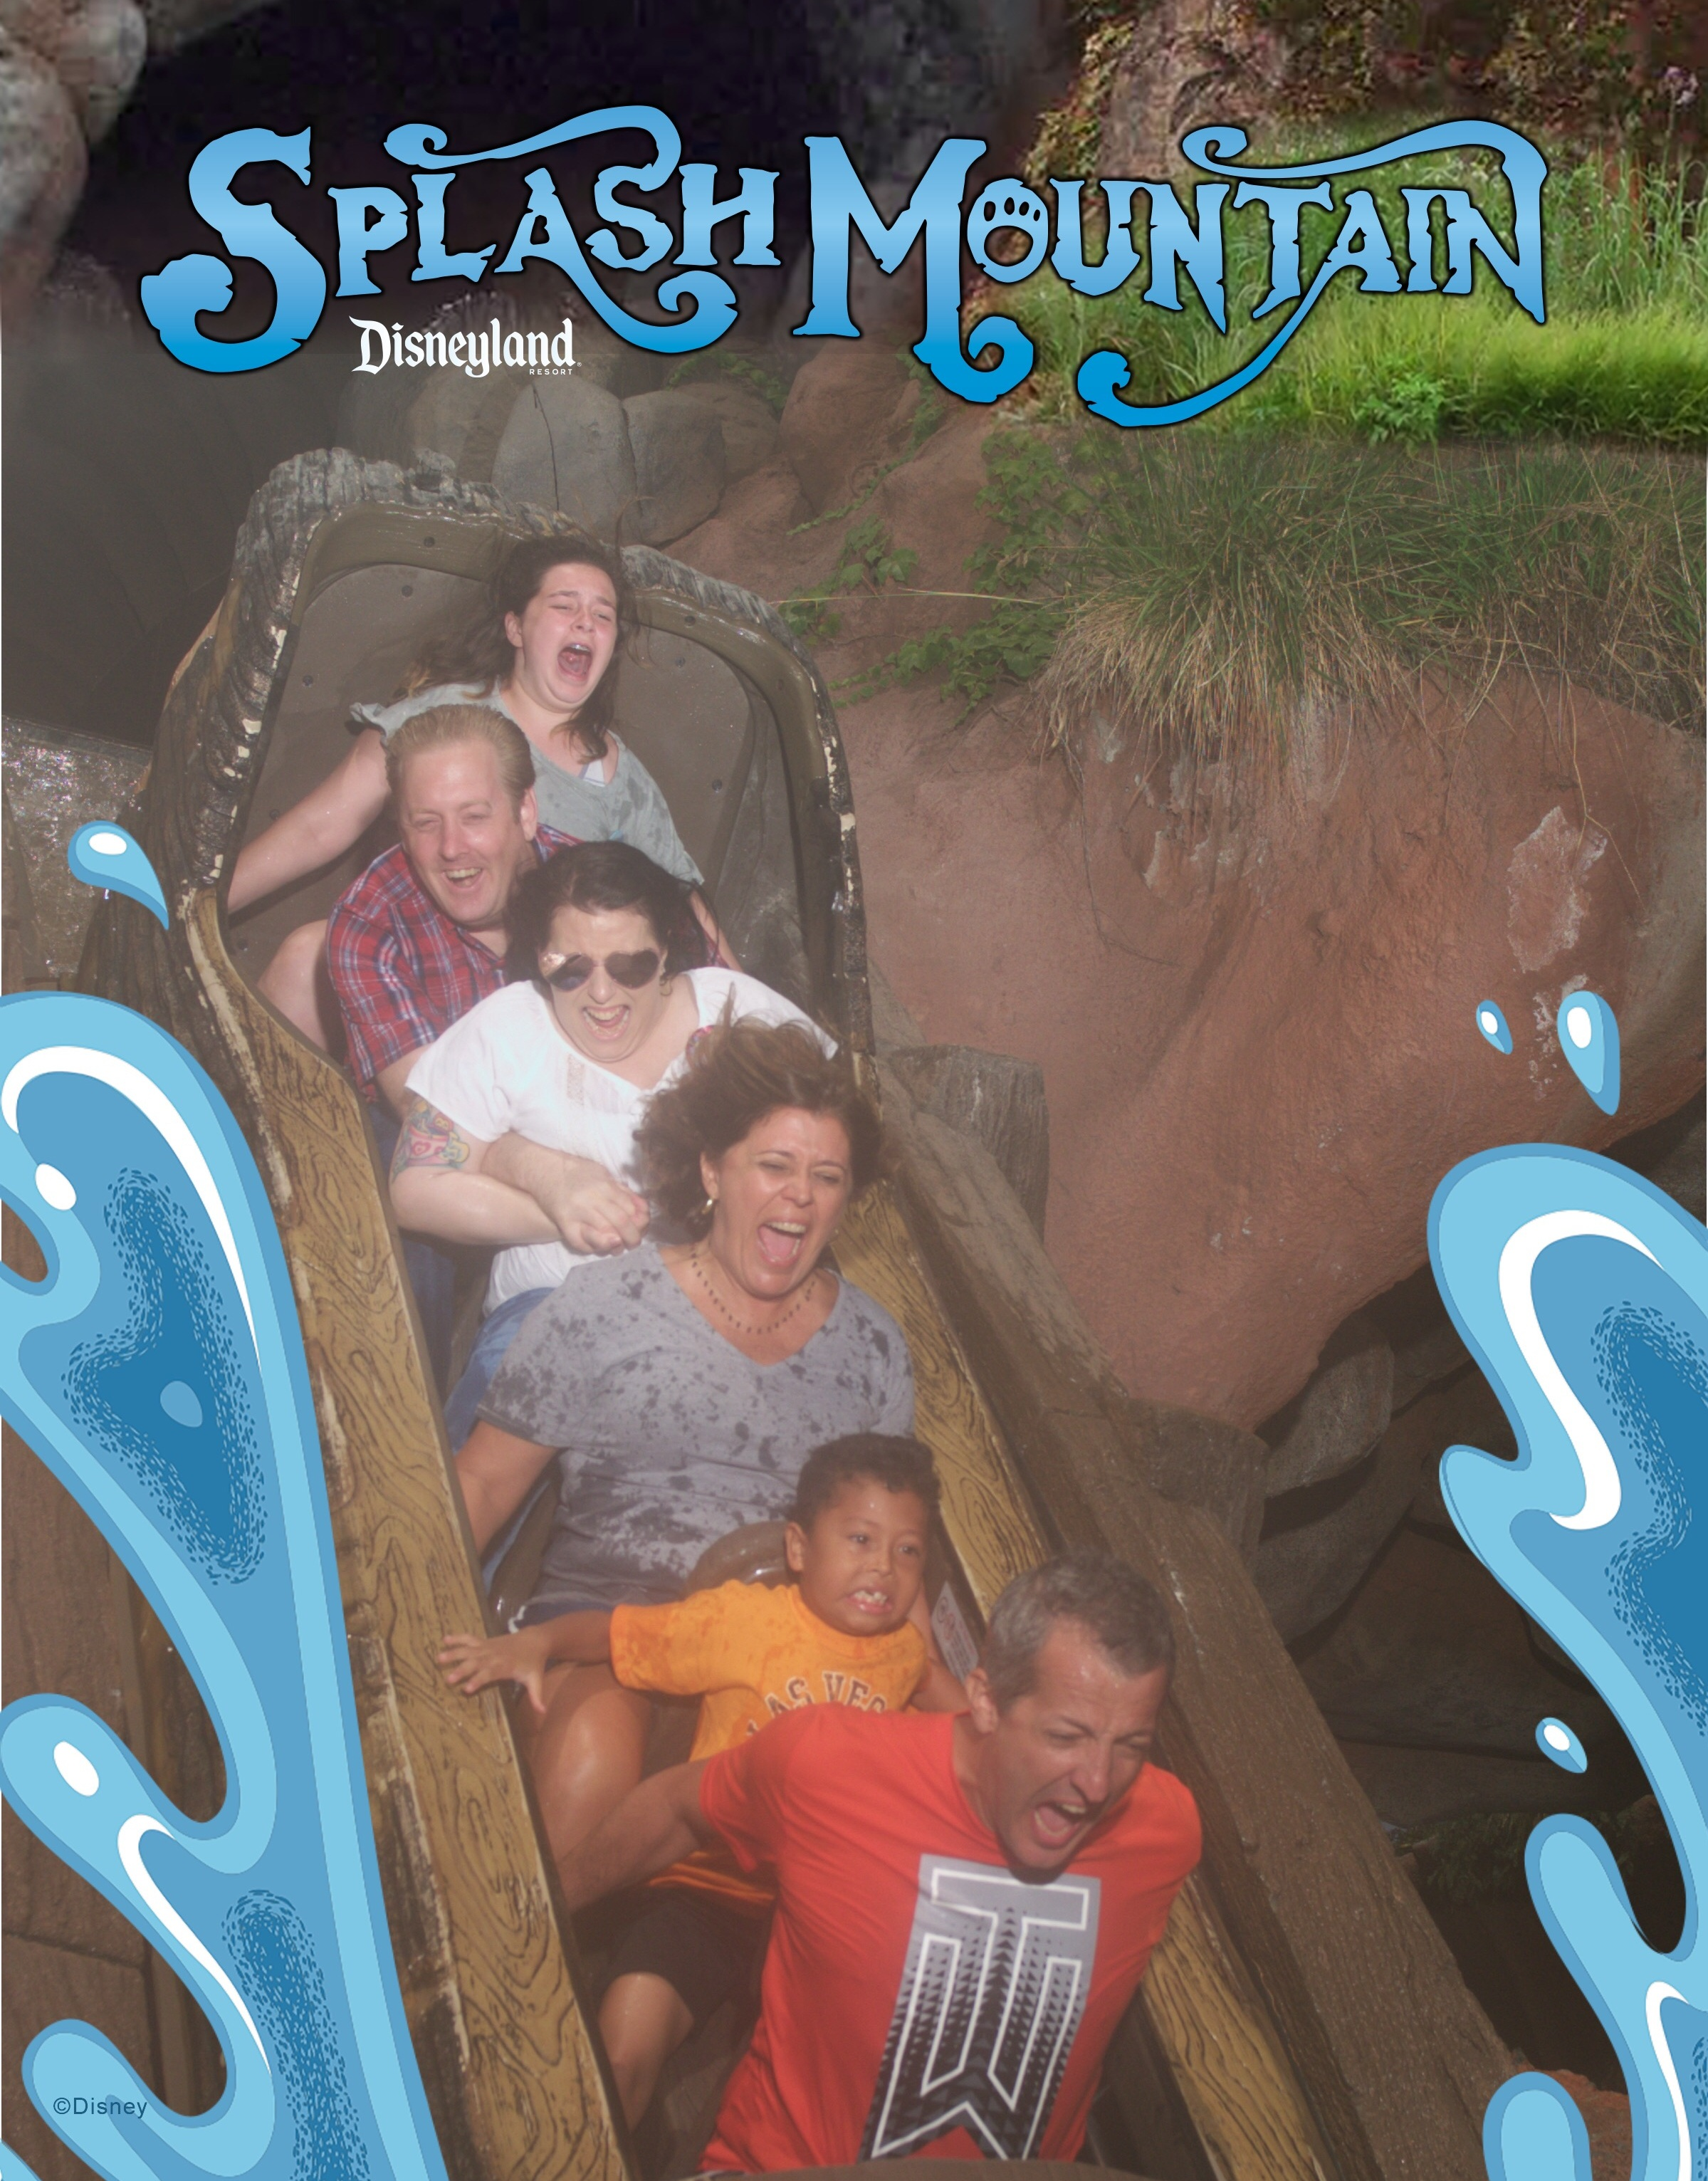 My husband was very clearly having fun. While everyone else was not. Lol.